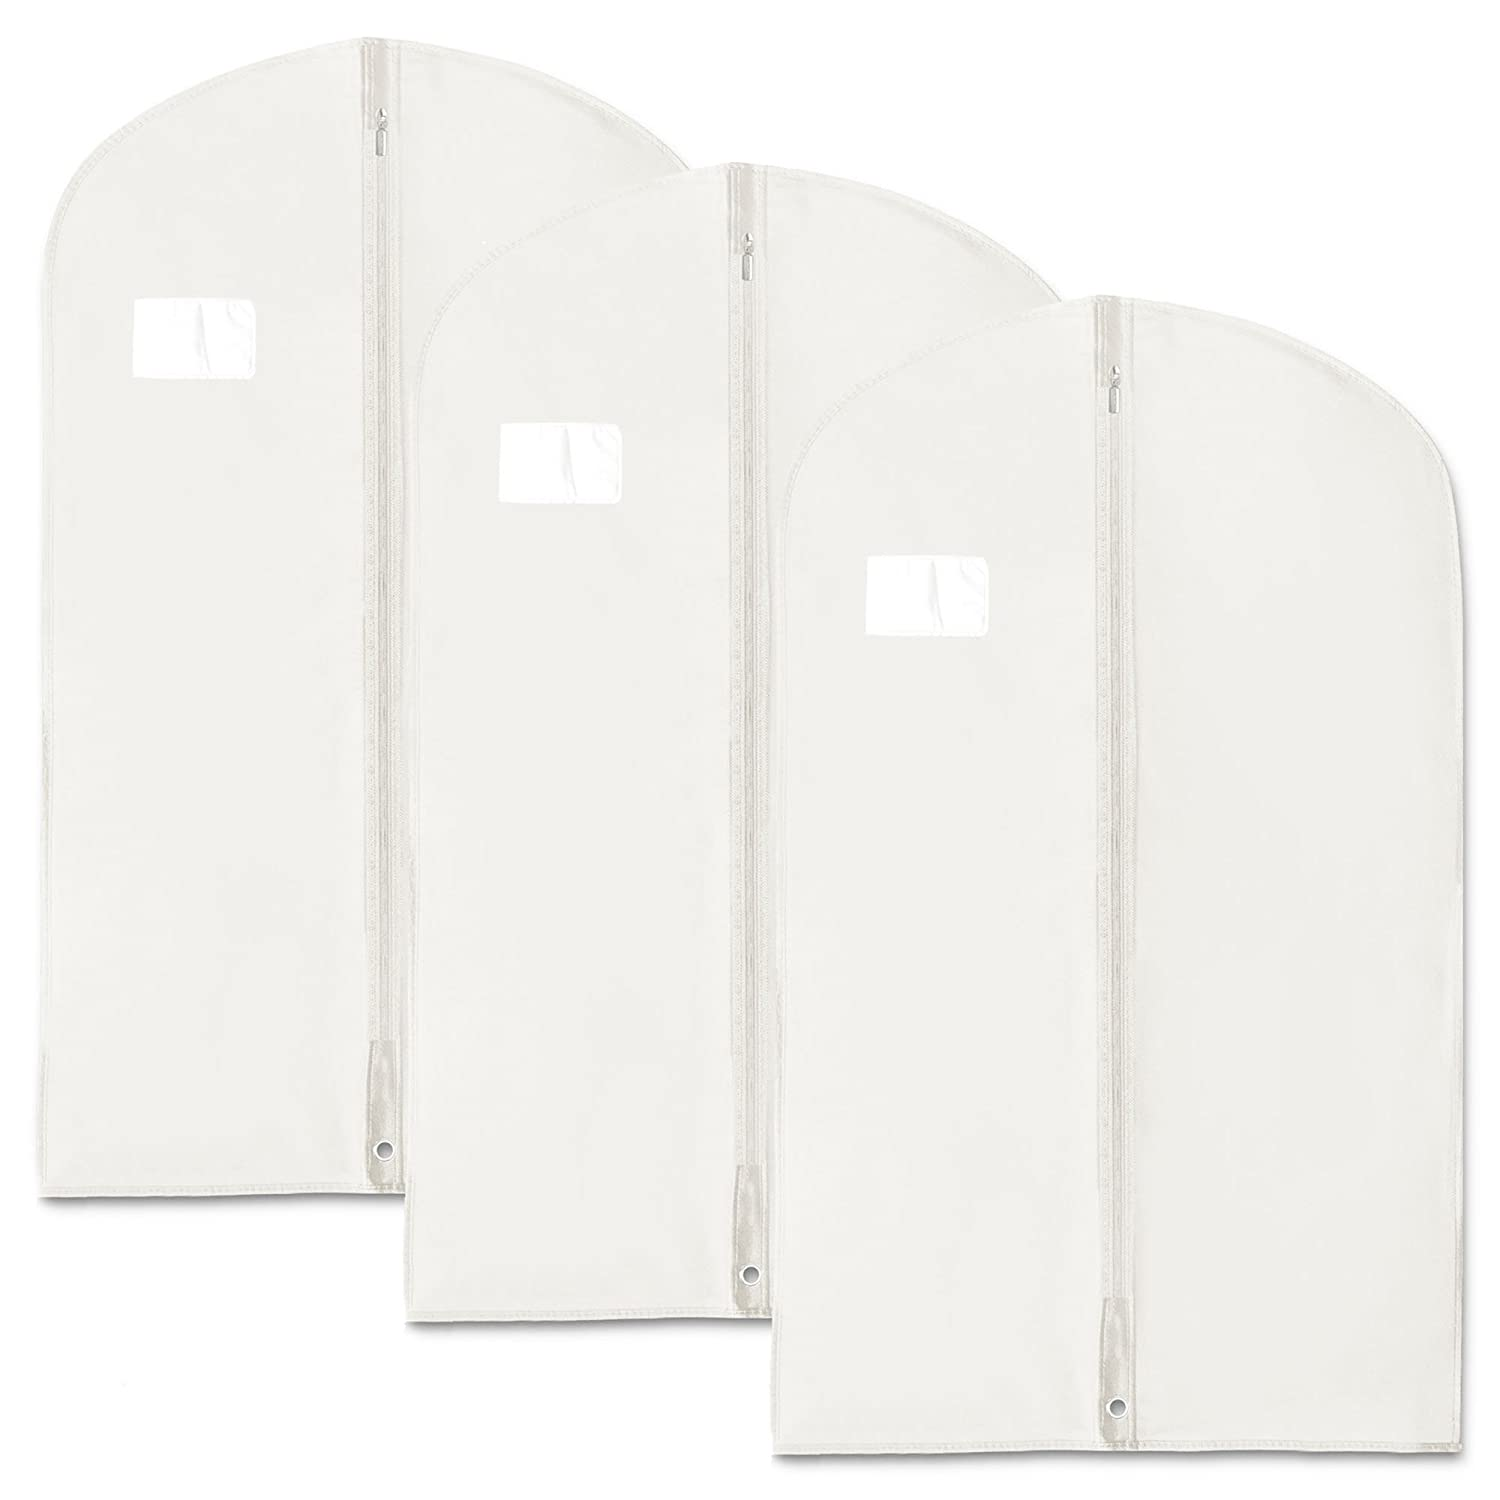 HANGERWORLD Synthetic 40-Inch Breathable Suit Garment Clothes Cover Bags, Pack of 3, White Z-100-WHITE-BR-3